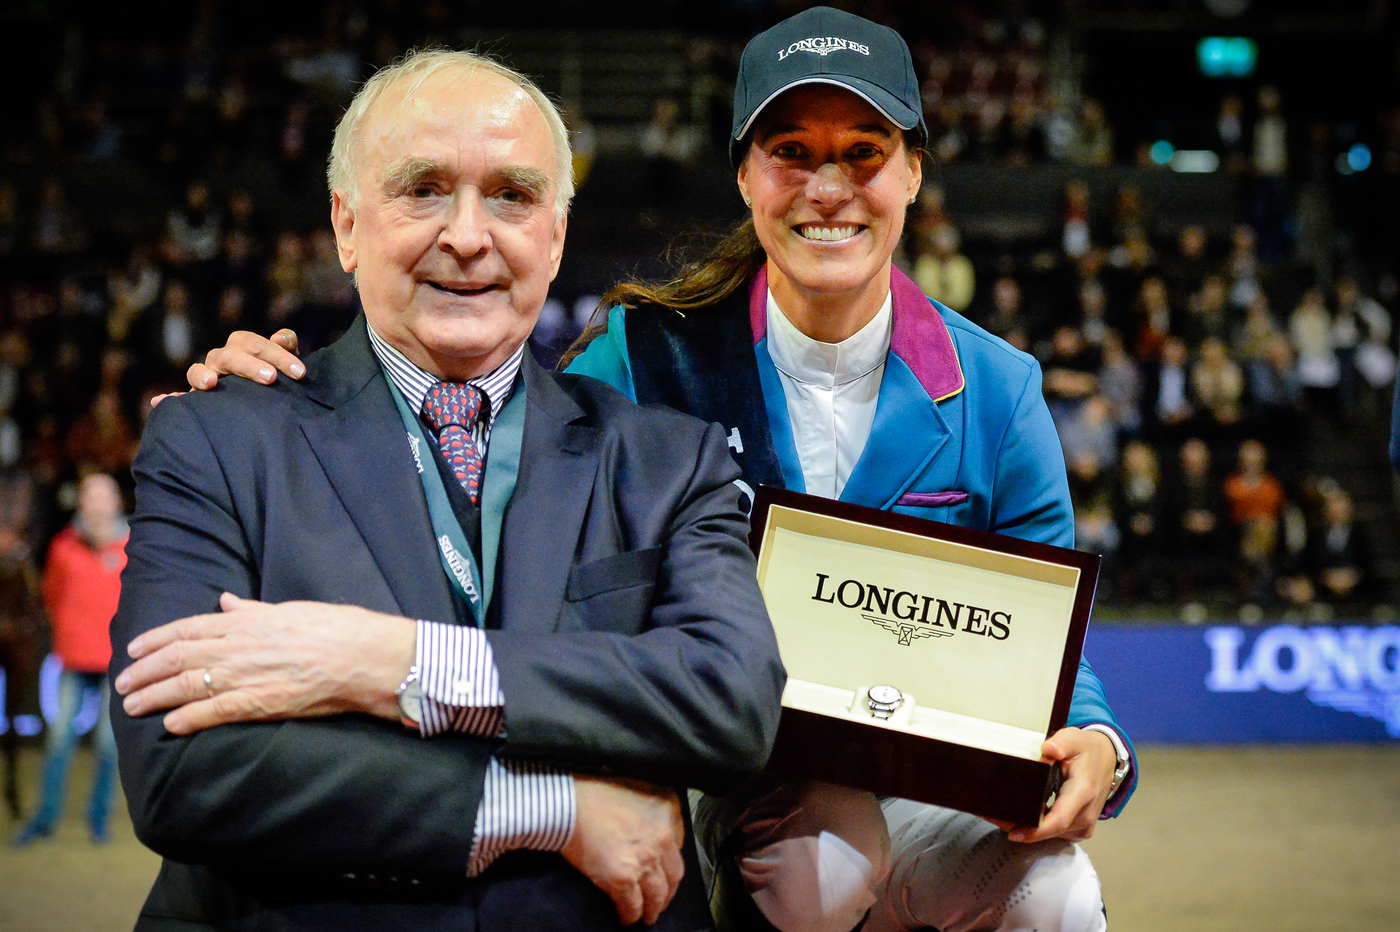 Longines Show Jumping Event: Luciana Diniz (POR) wins the Longines Grand Prix of the Longines CSI Basel 1